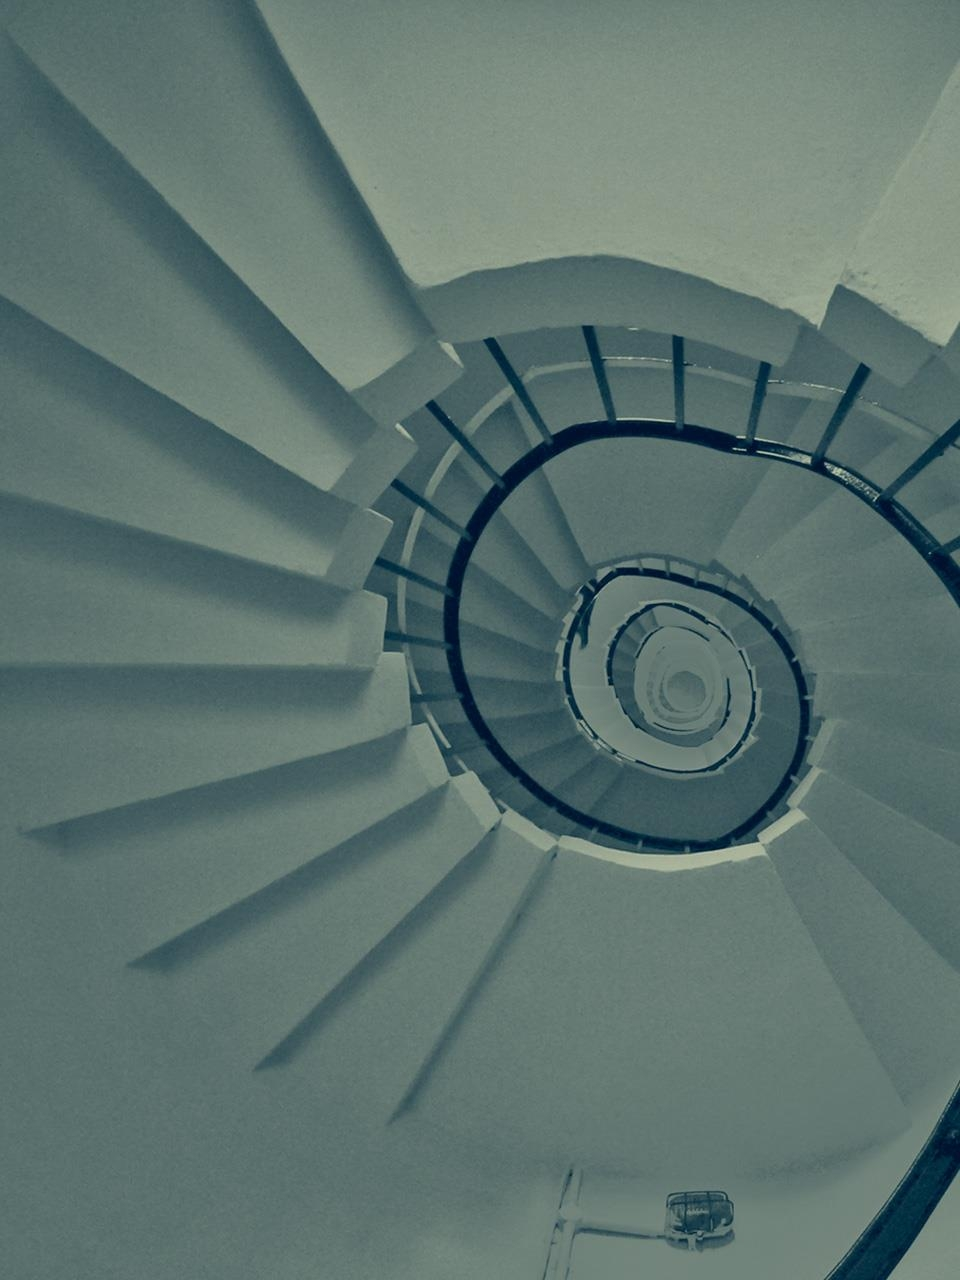 How To Build A Spiral Staircase | 36 Inch Spiral Staircase | Stair Case | Steel | Steps | Tread Depth | Handrail